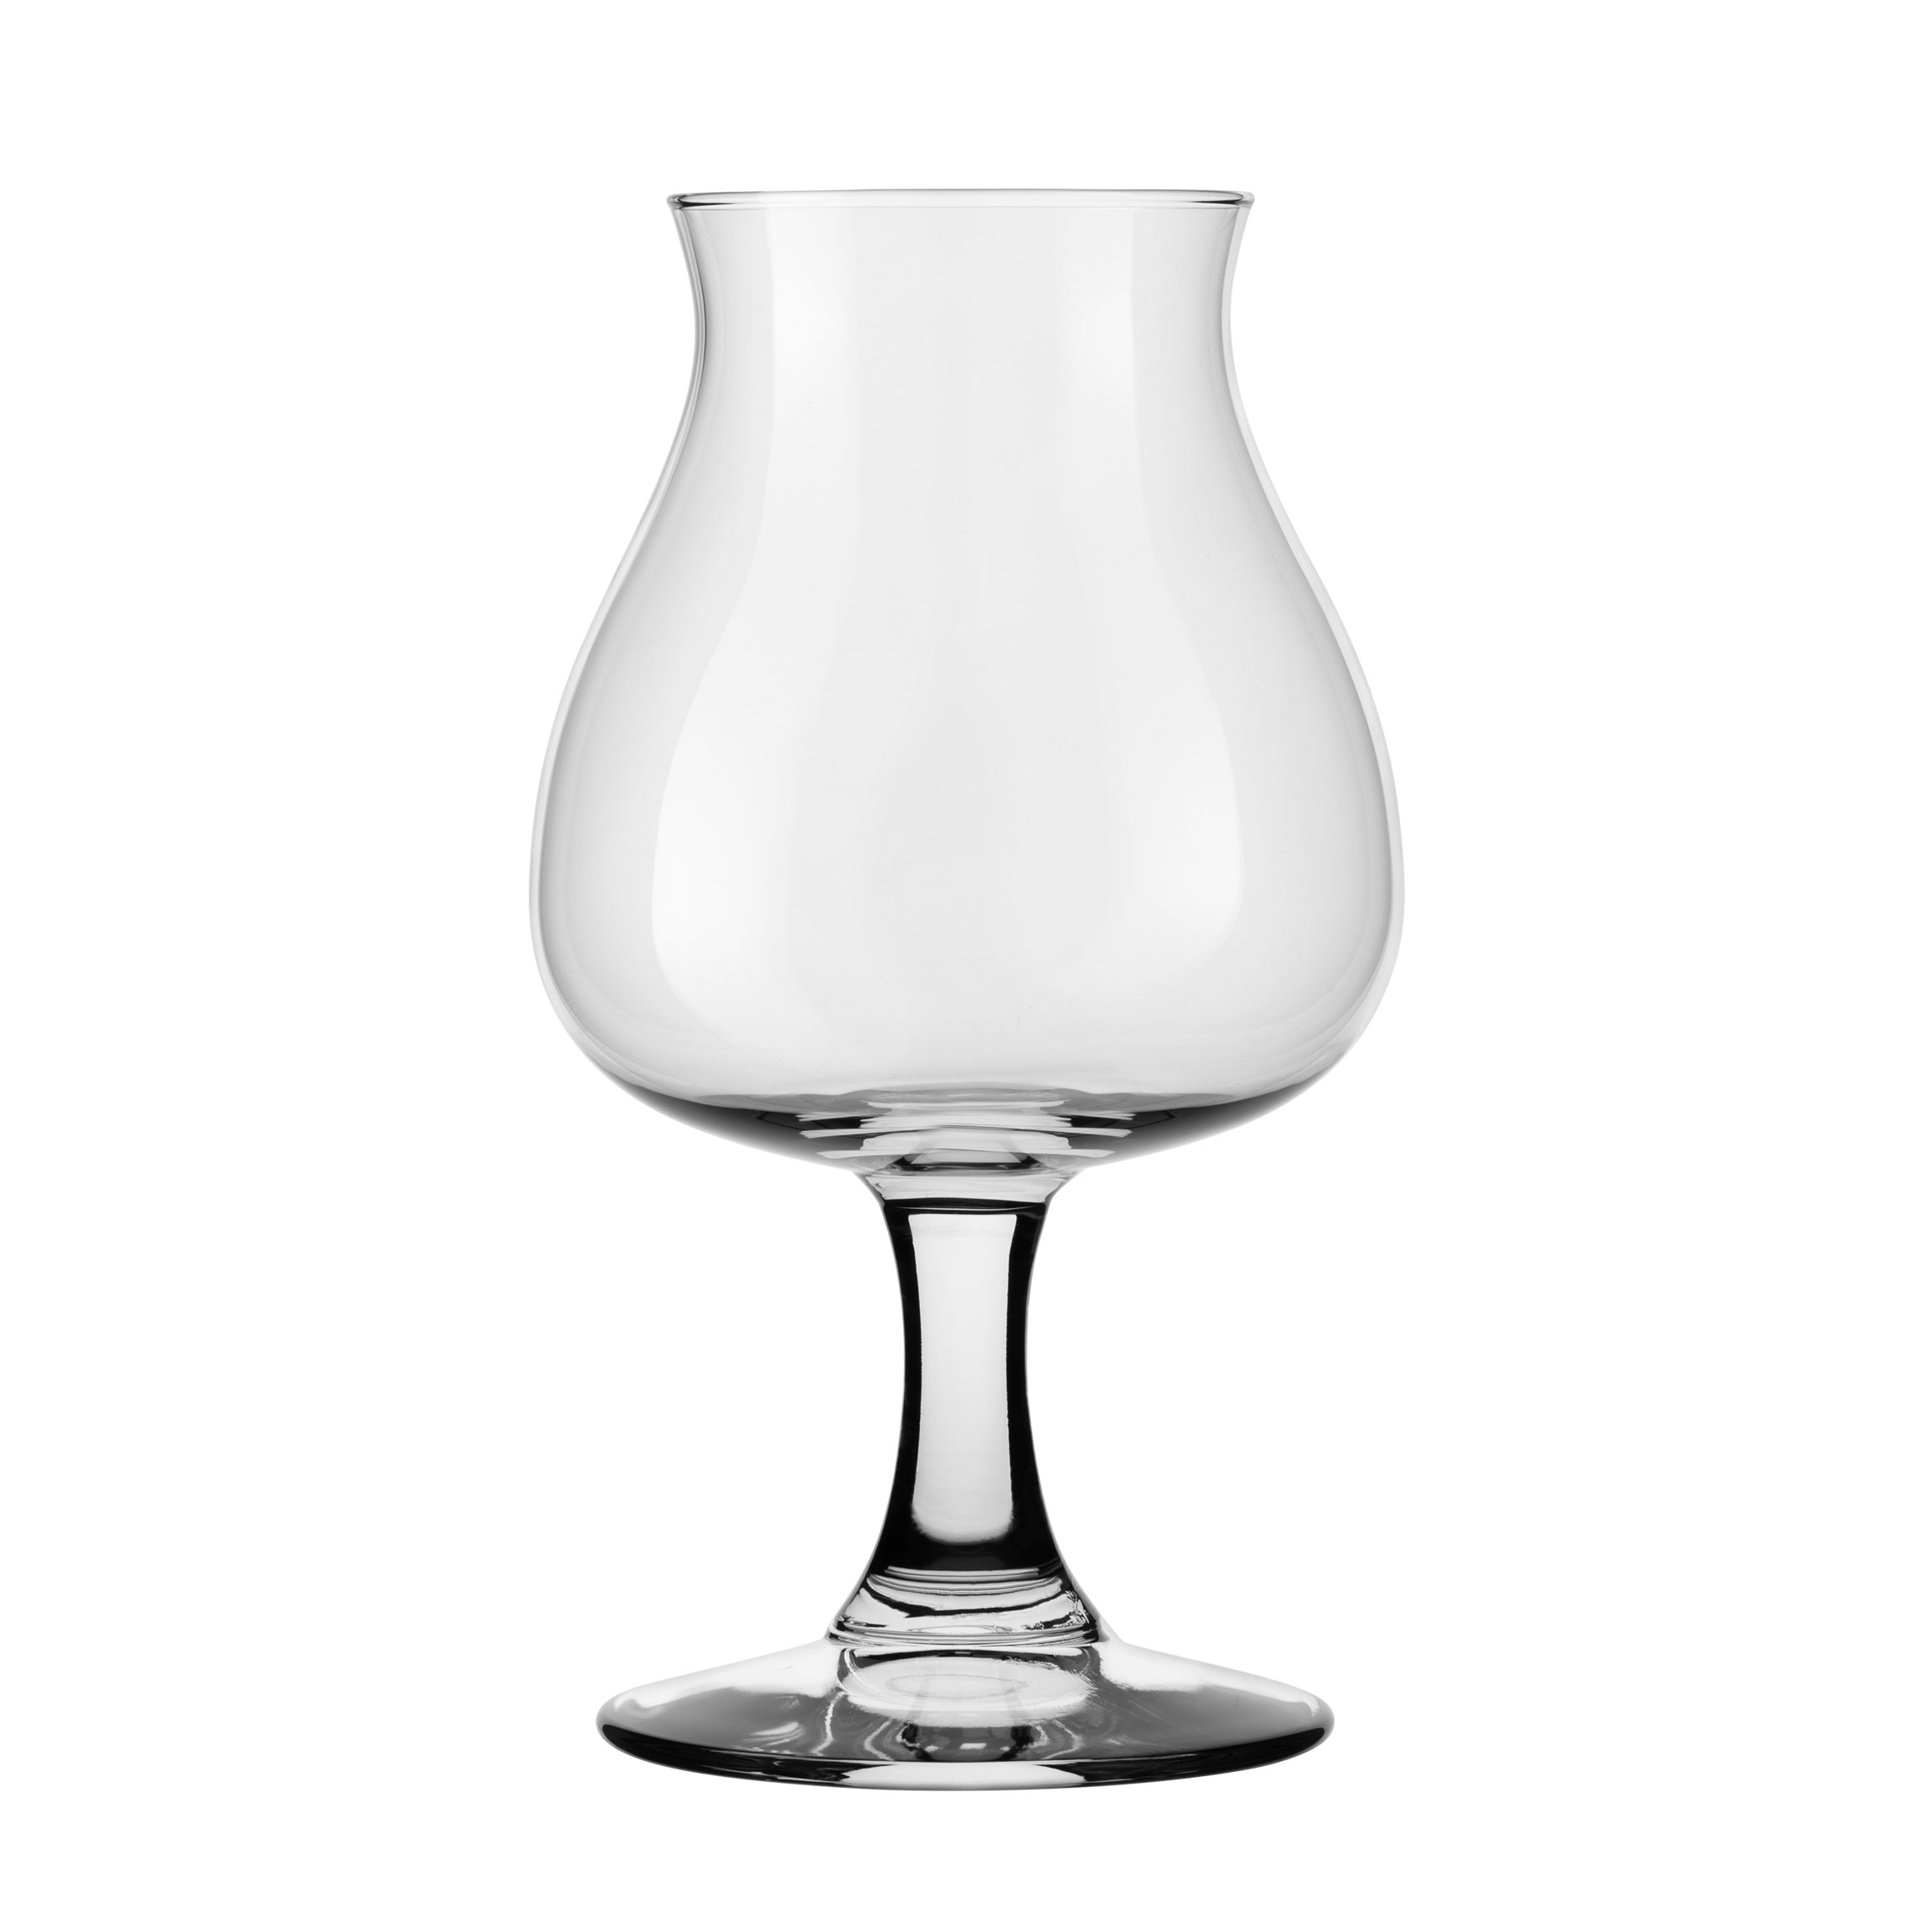 Libbey Glass 441147 glass, beer